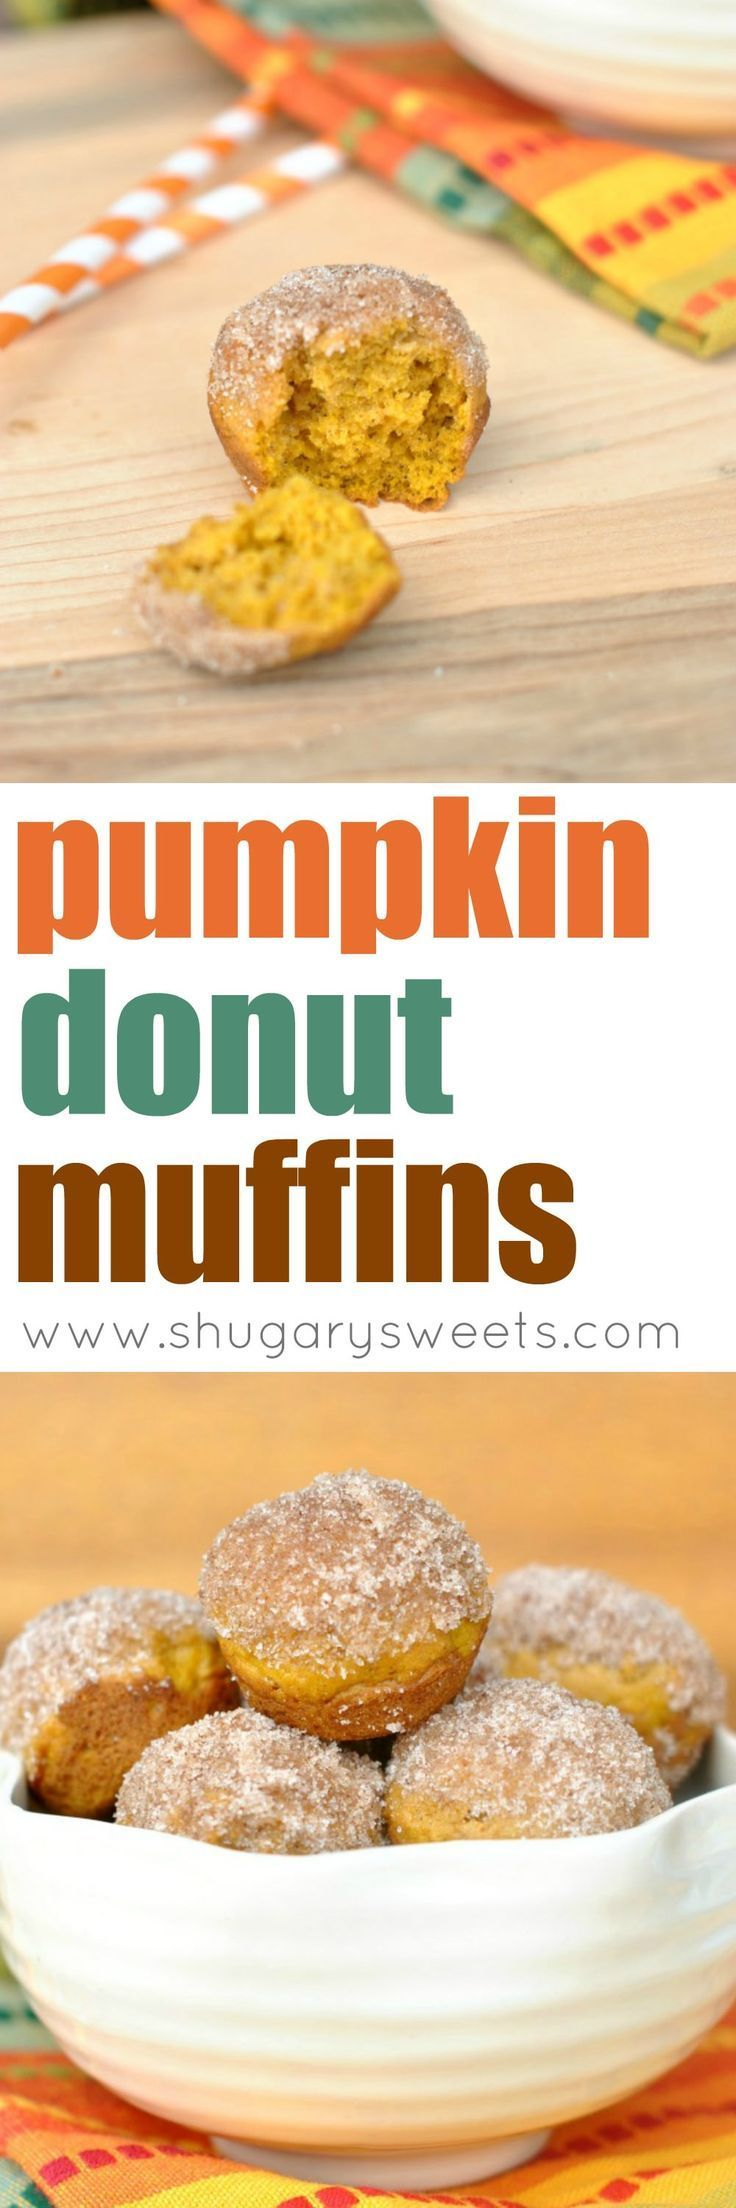 Bite sized Pumpkin Donut Muffins! Roll in butter and cinnamon/sugar! These donut muffins freeze really well too!